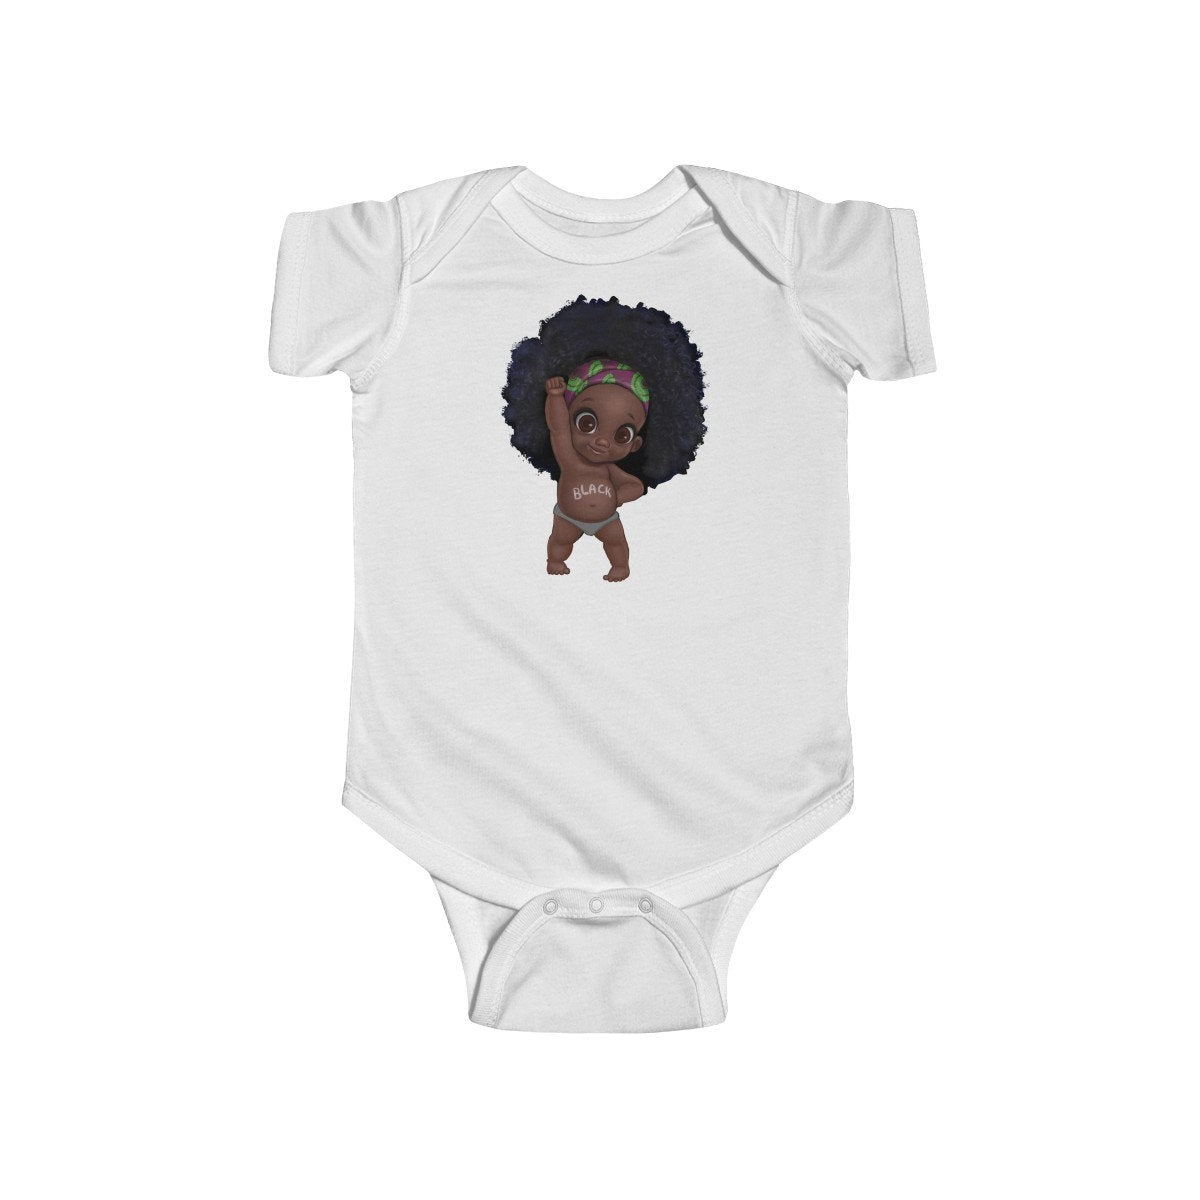 Afrocentric Onesies, Baby Onesies